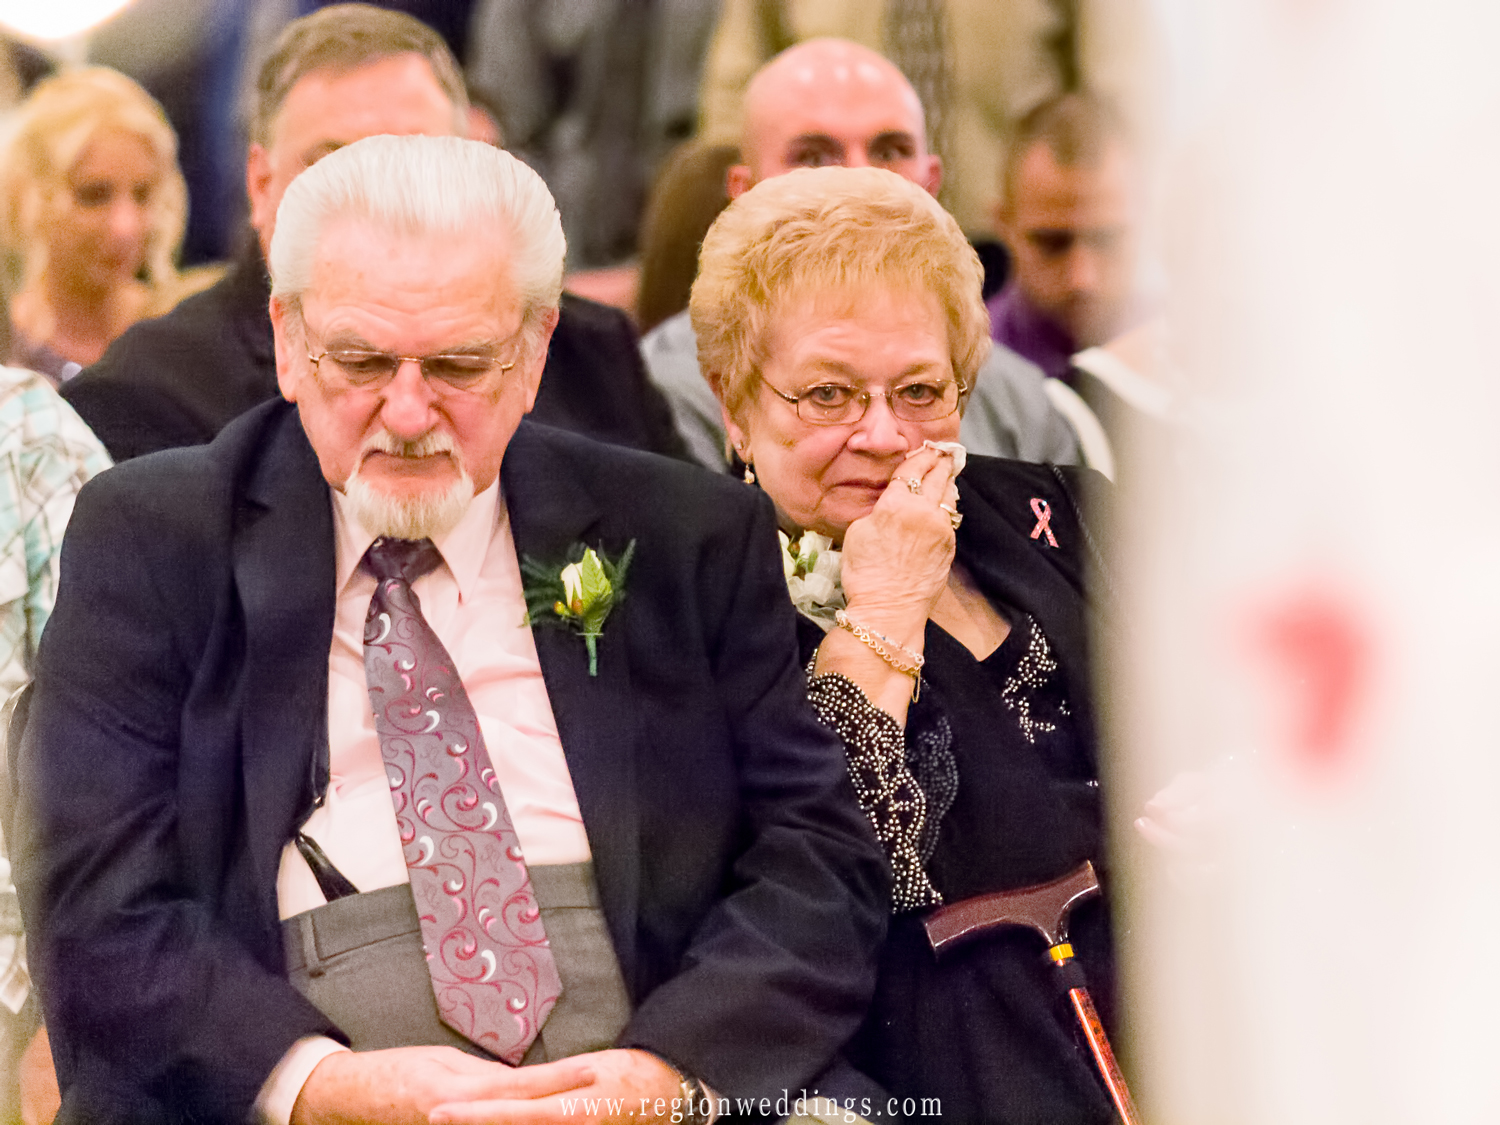 Happy tears come forth as grandparents of the bride watch her get married.